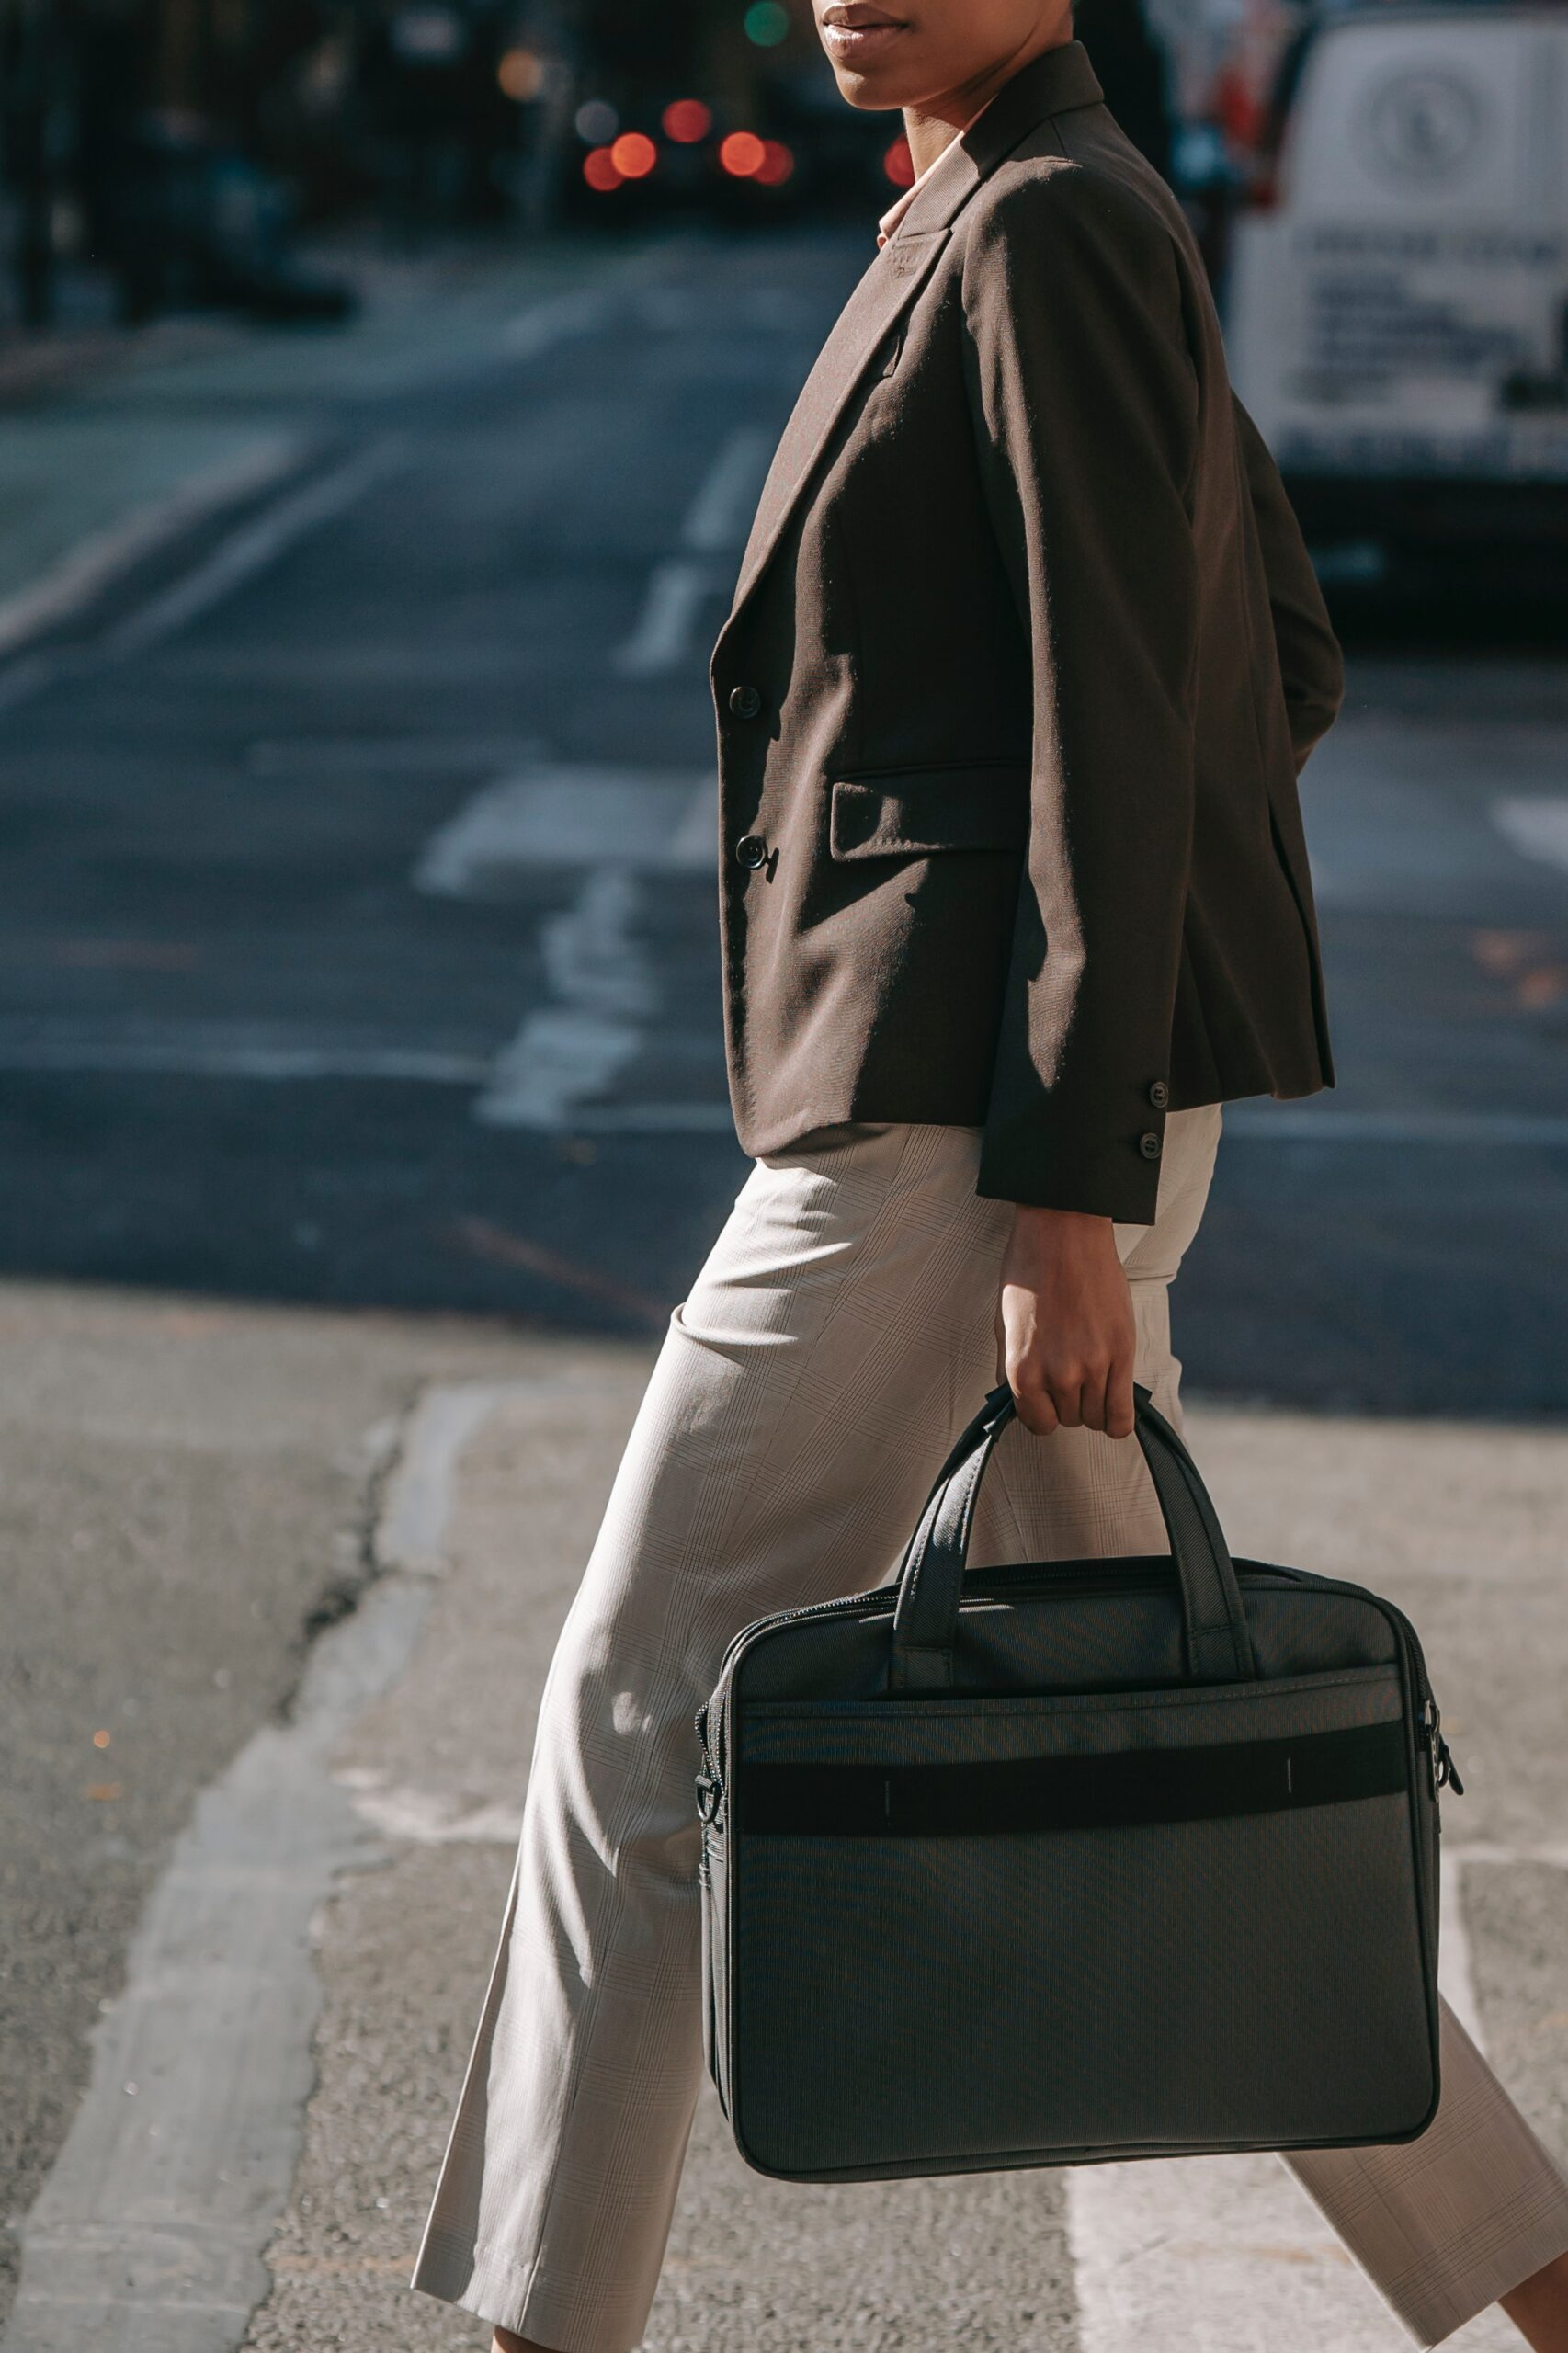 Woman walking across the street in business attire and brief case